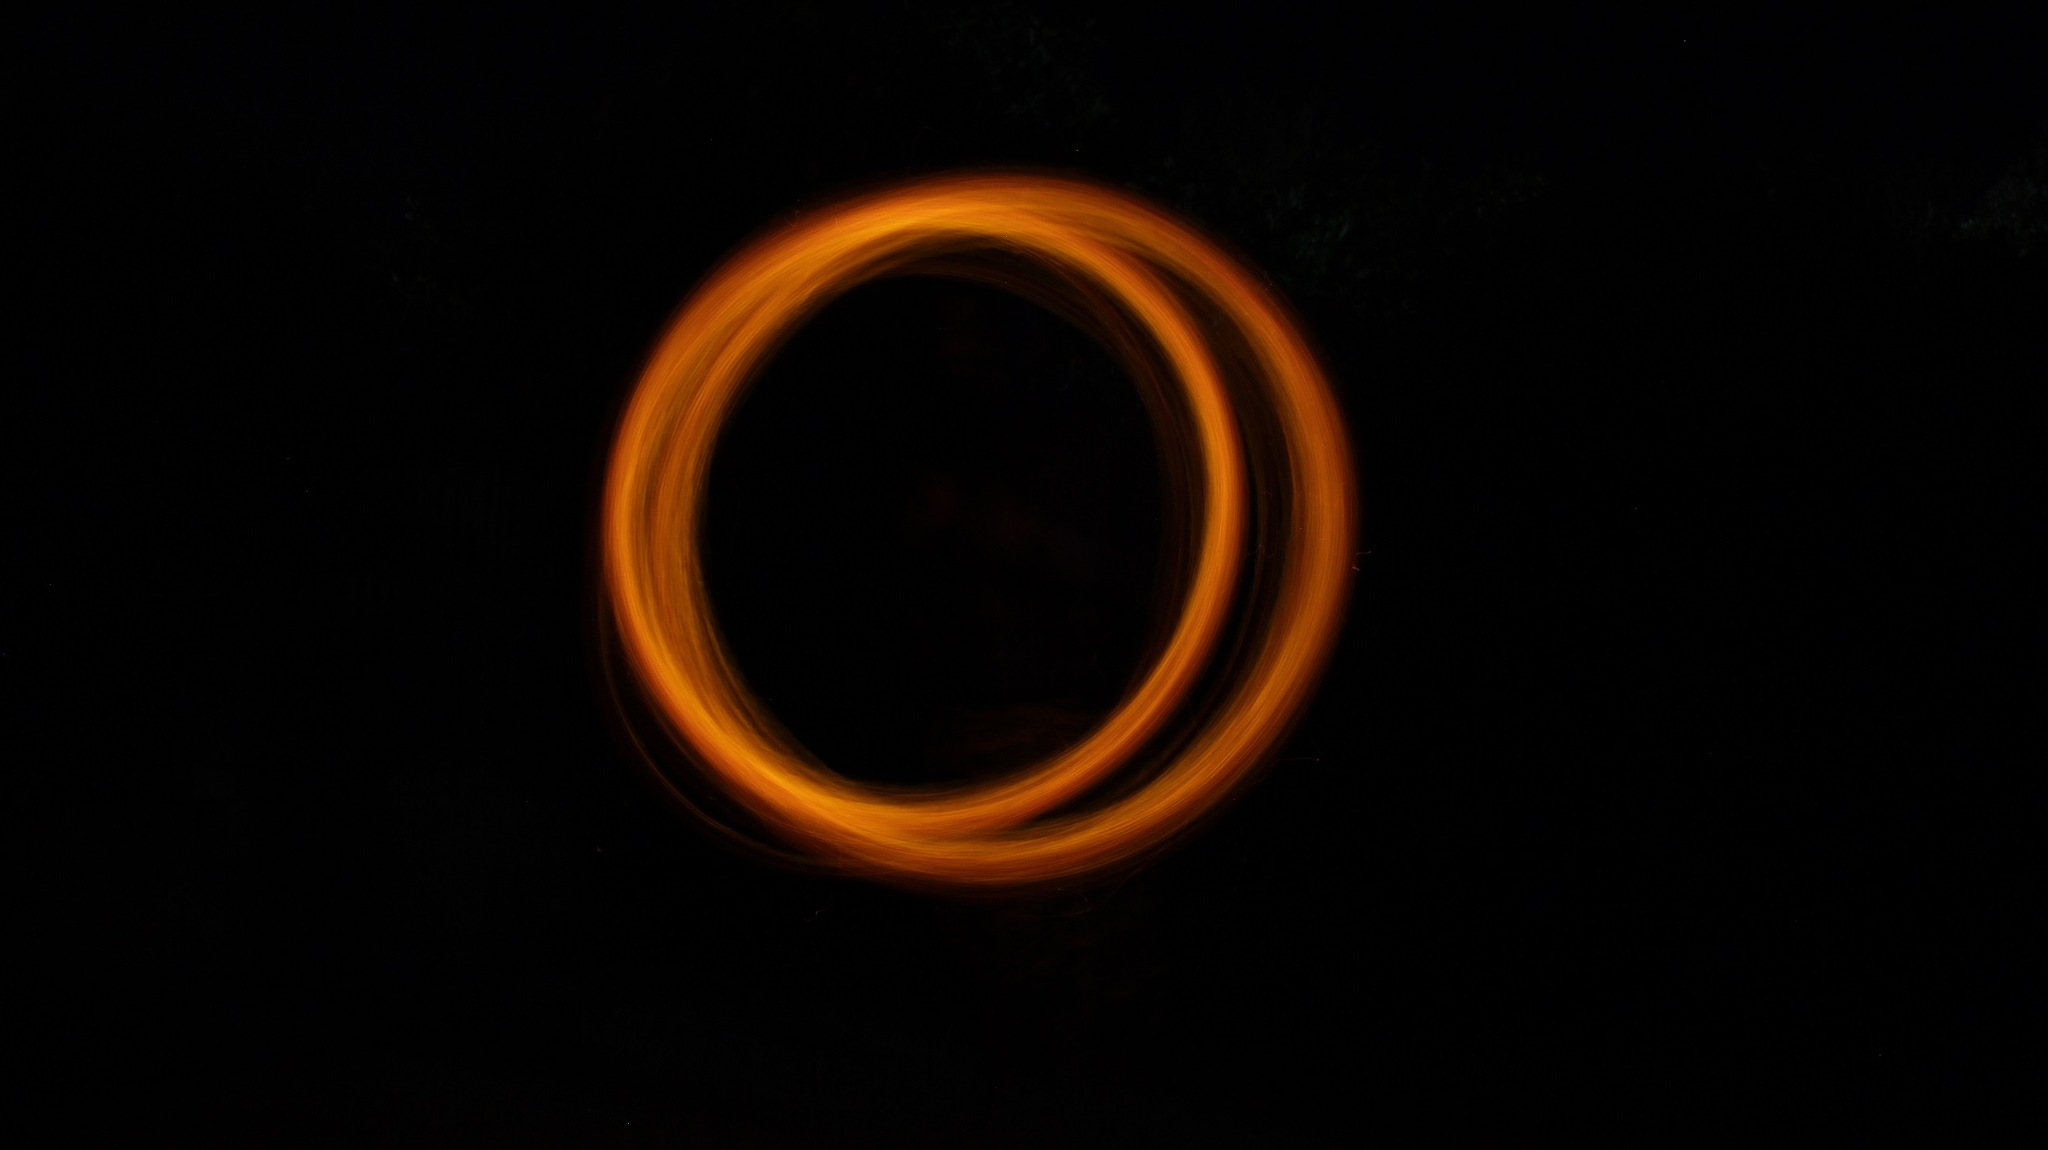 Fire Ring by Morteza Akhnia